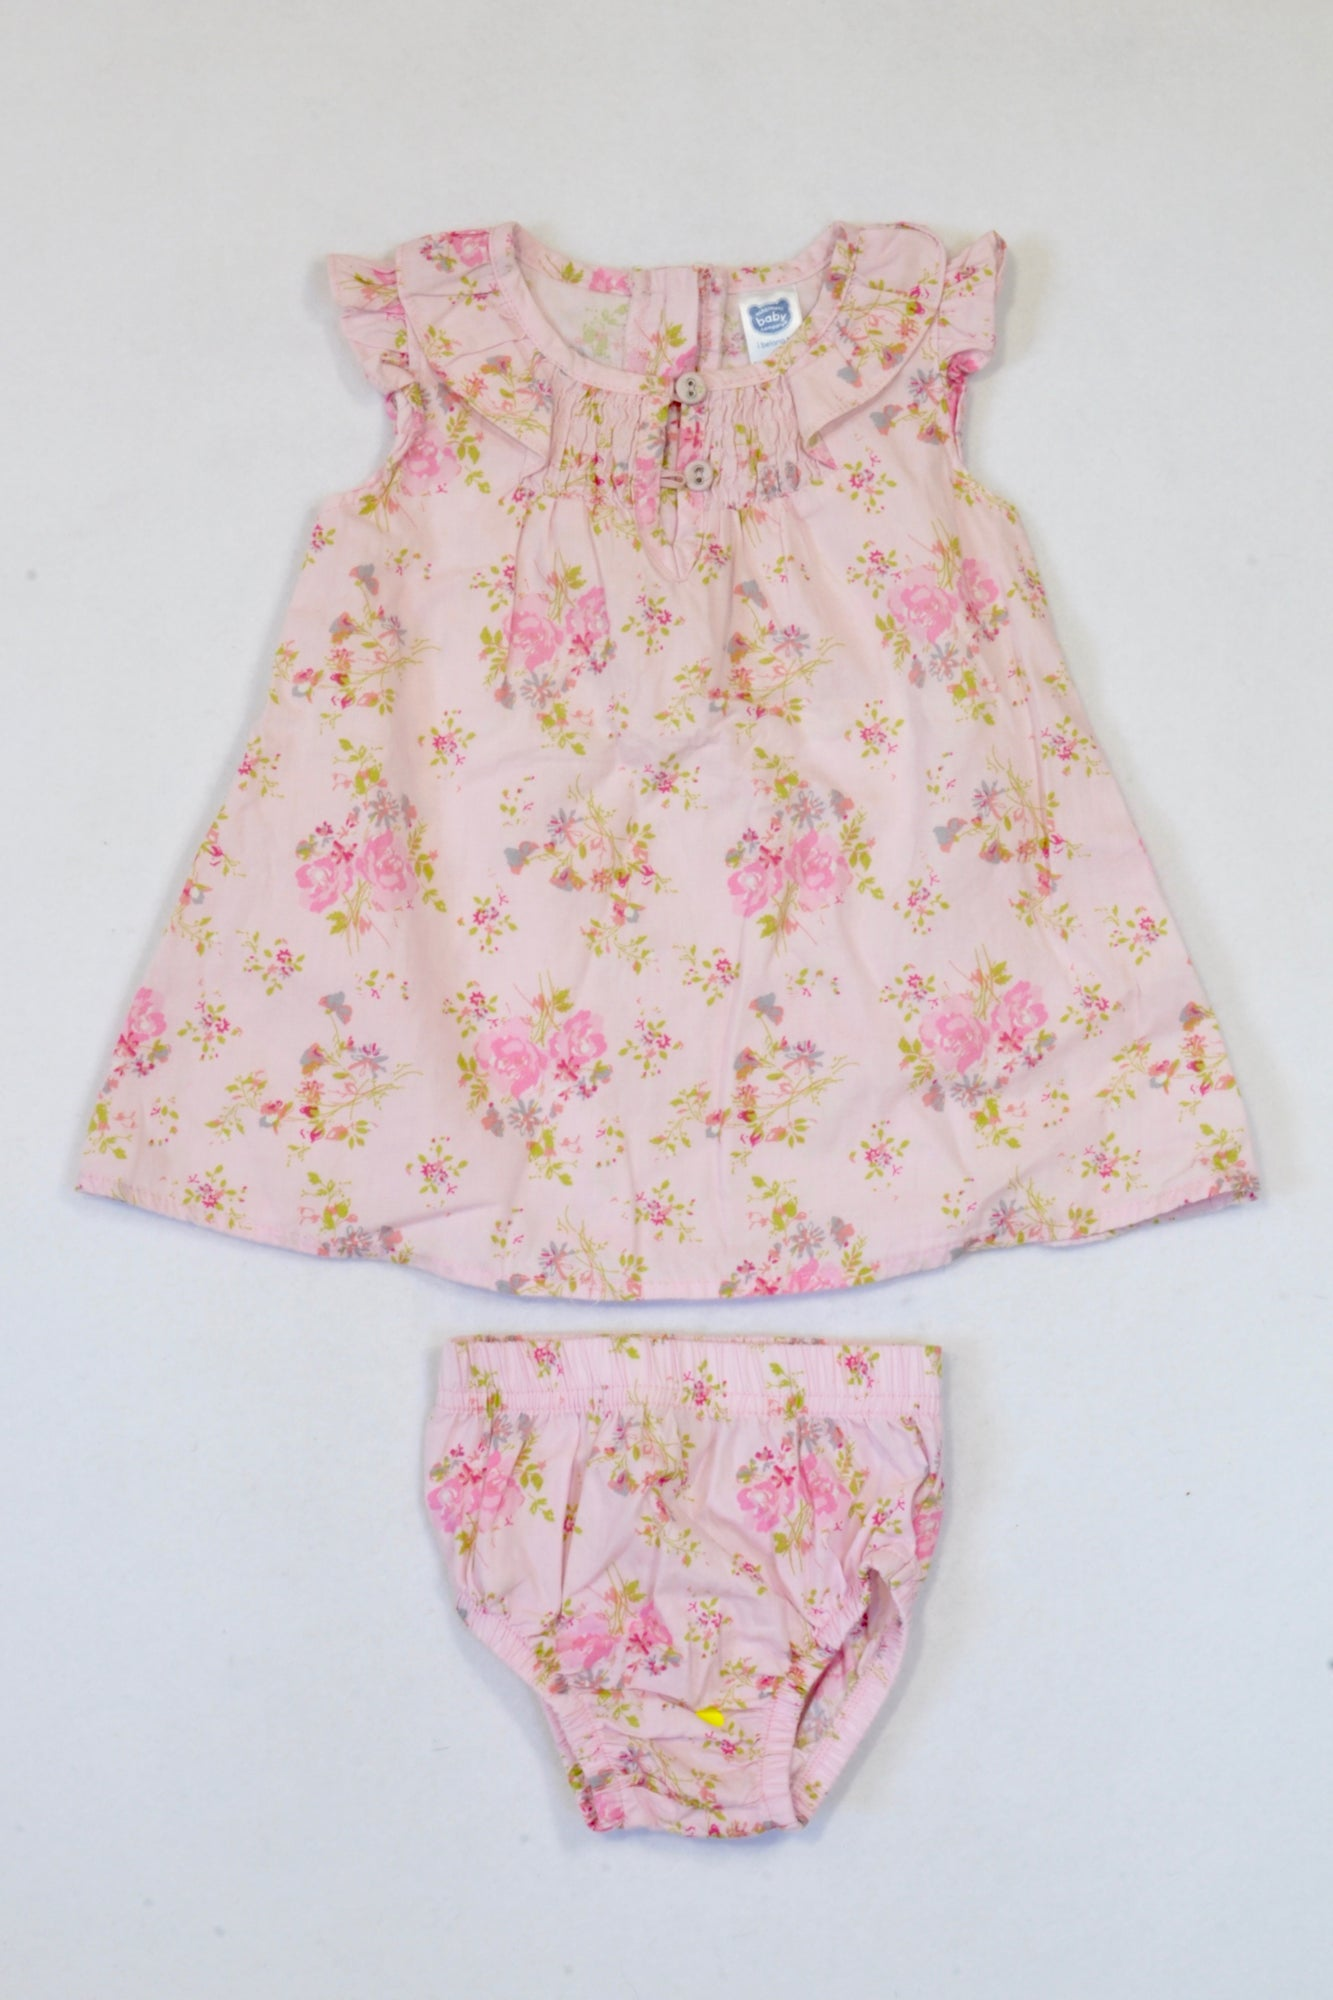 Ackermans Pink Floral Bloomers & Dress Girls 0-3 months